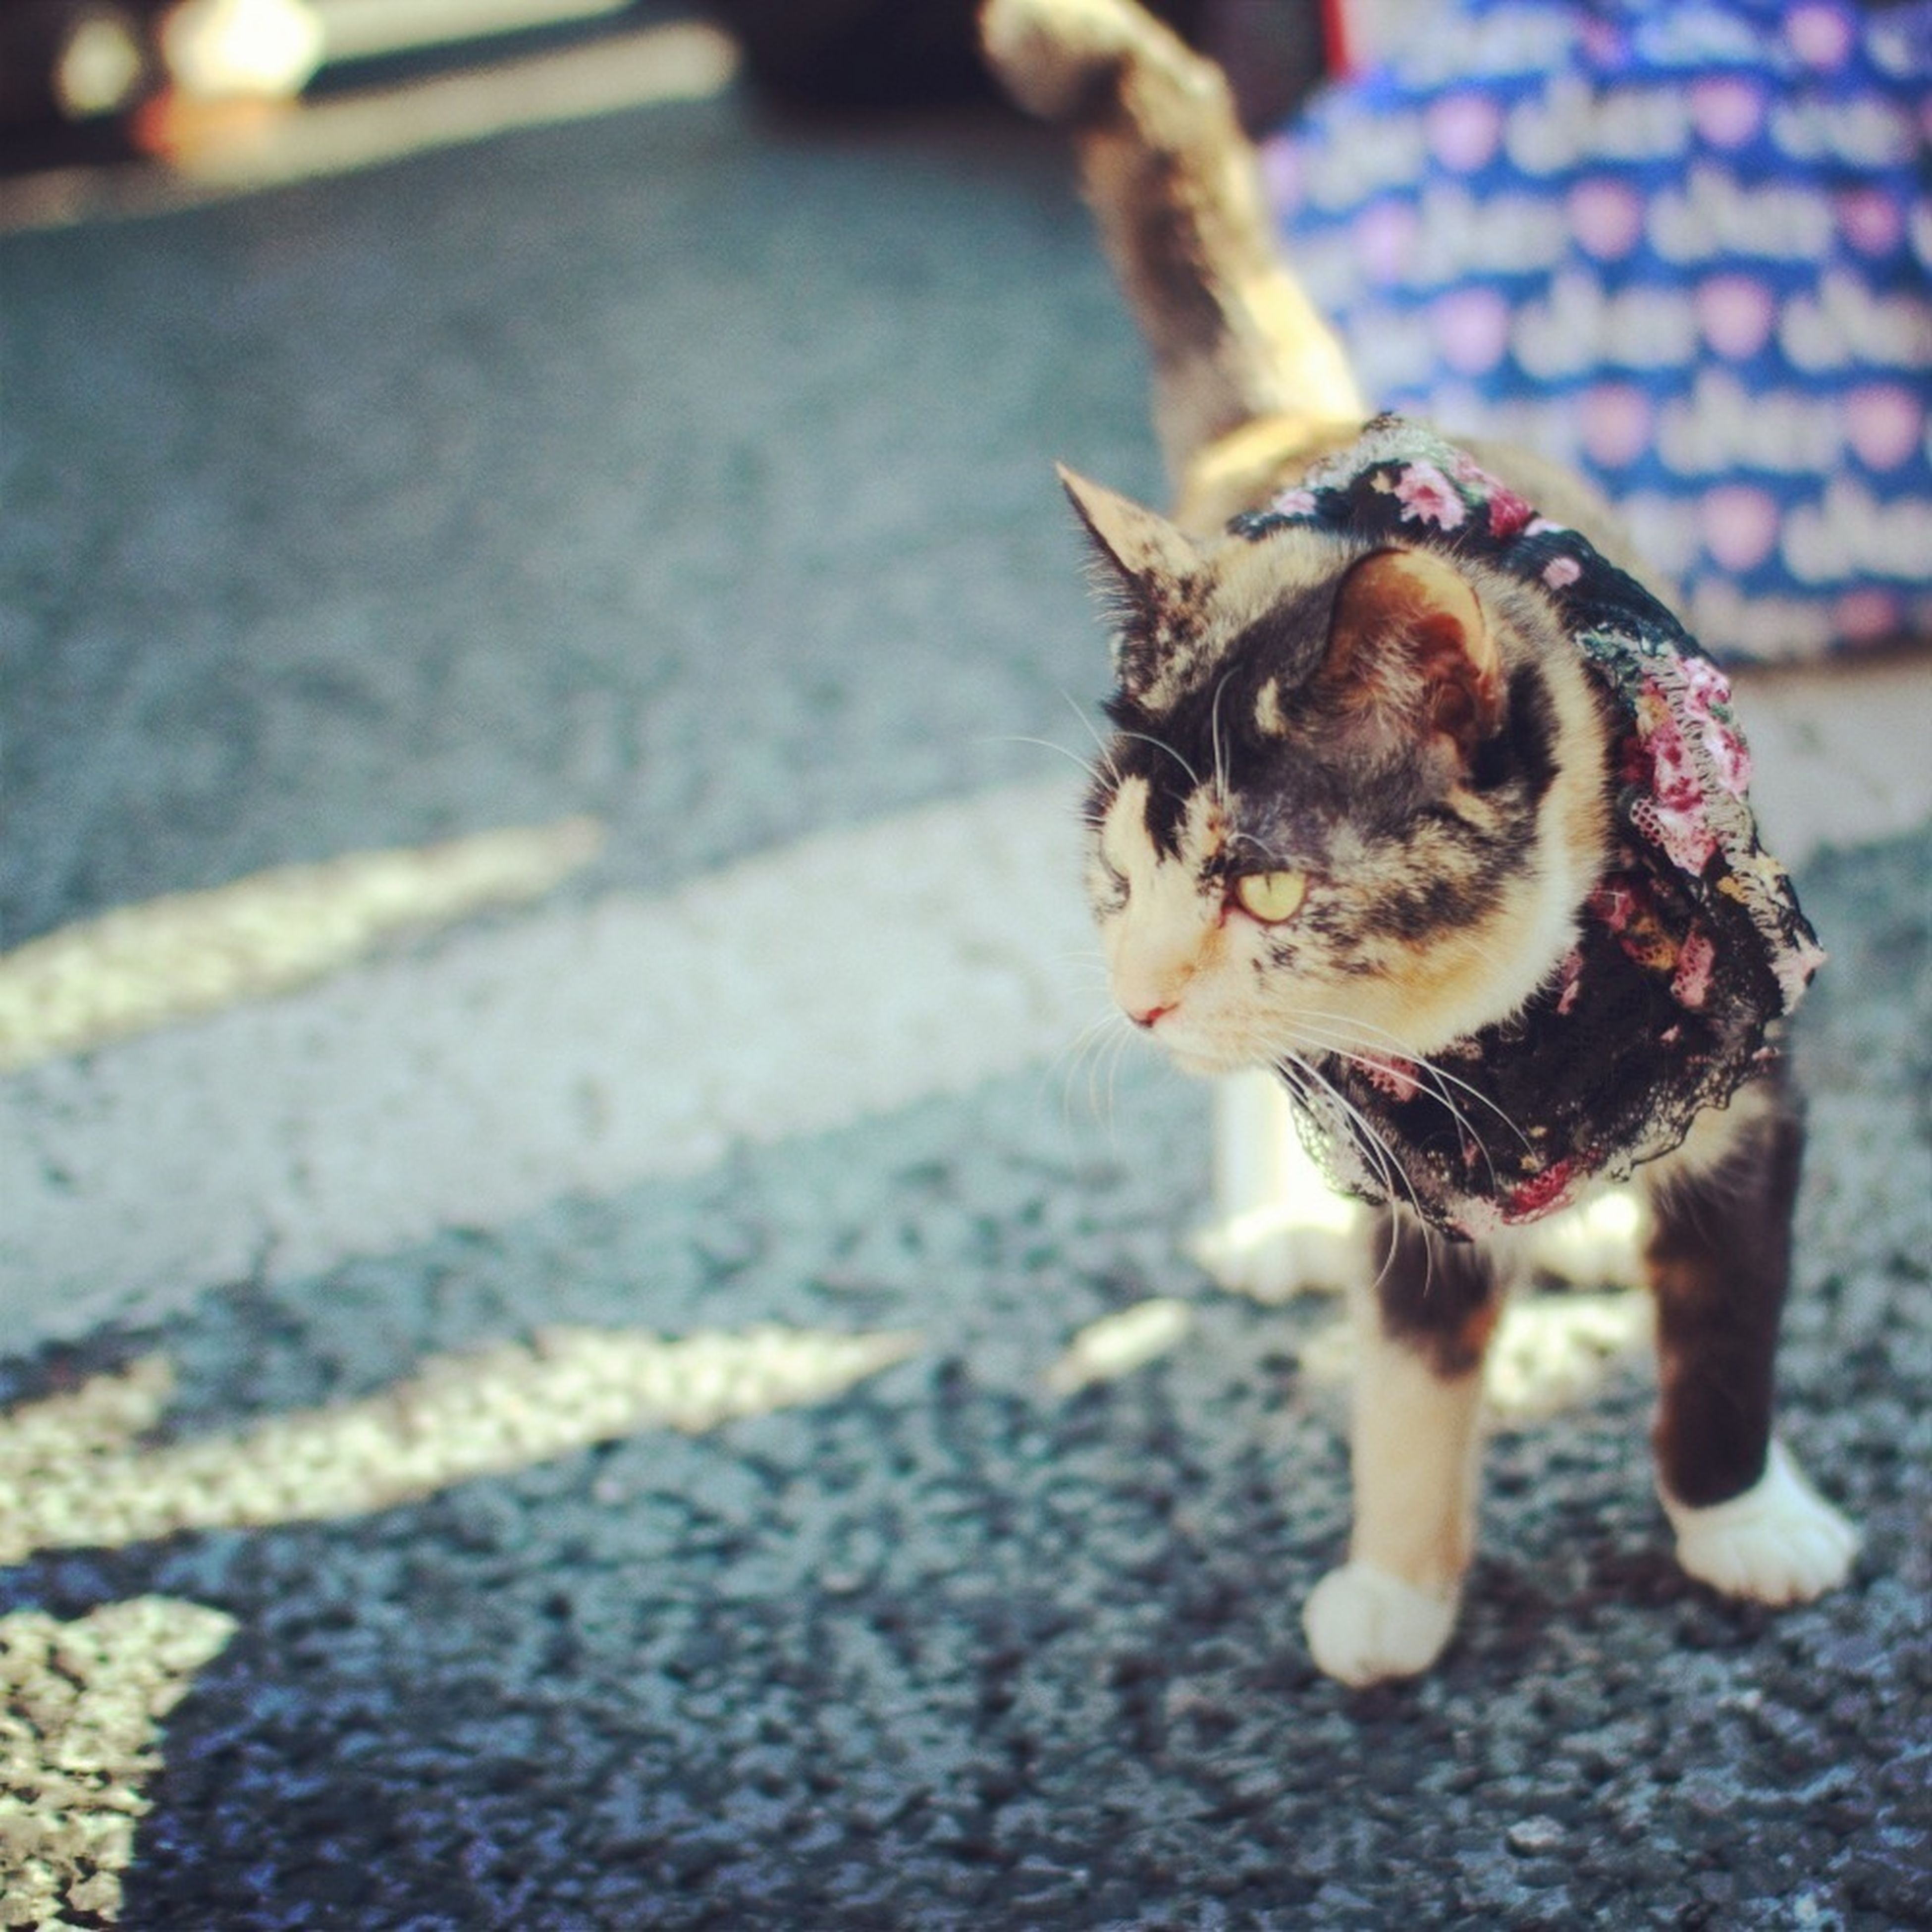 pets, one animal, animal themes, domestic animals, dog, mammal, street, selective focus, focus on foreground, portrait, looking at camera, road, pet leash, full length, running, sunlight, outdoors, day, walking, domestic cat